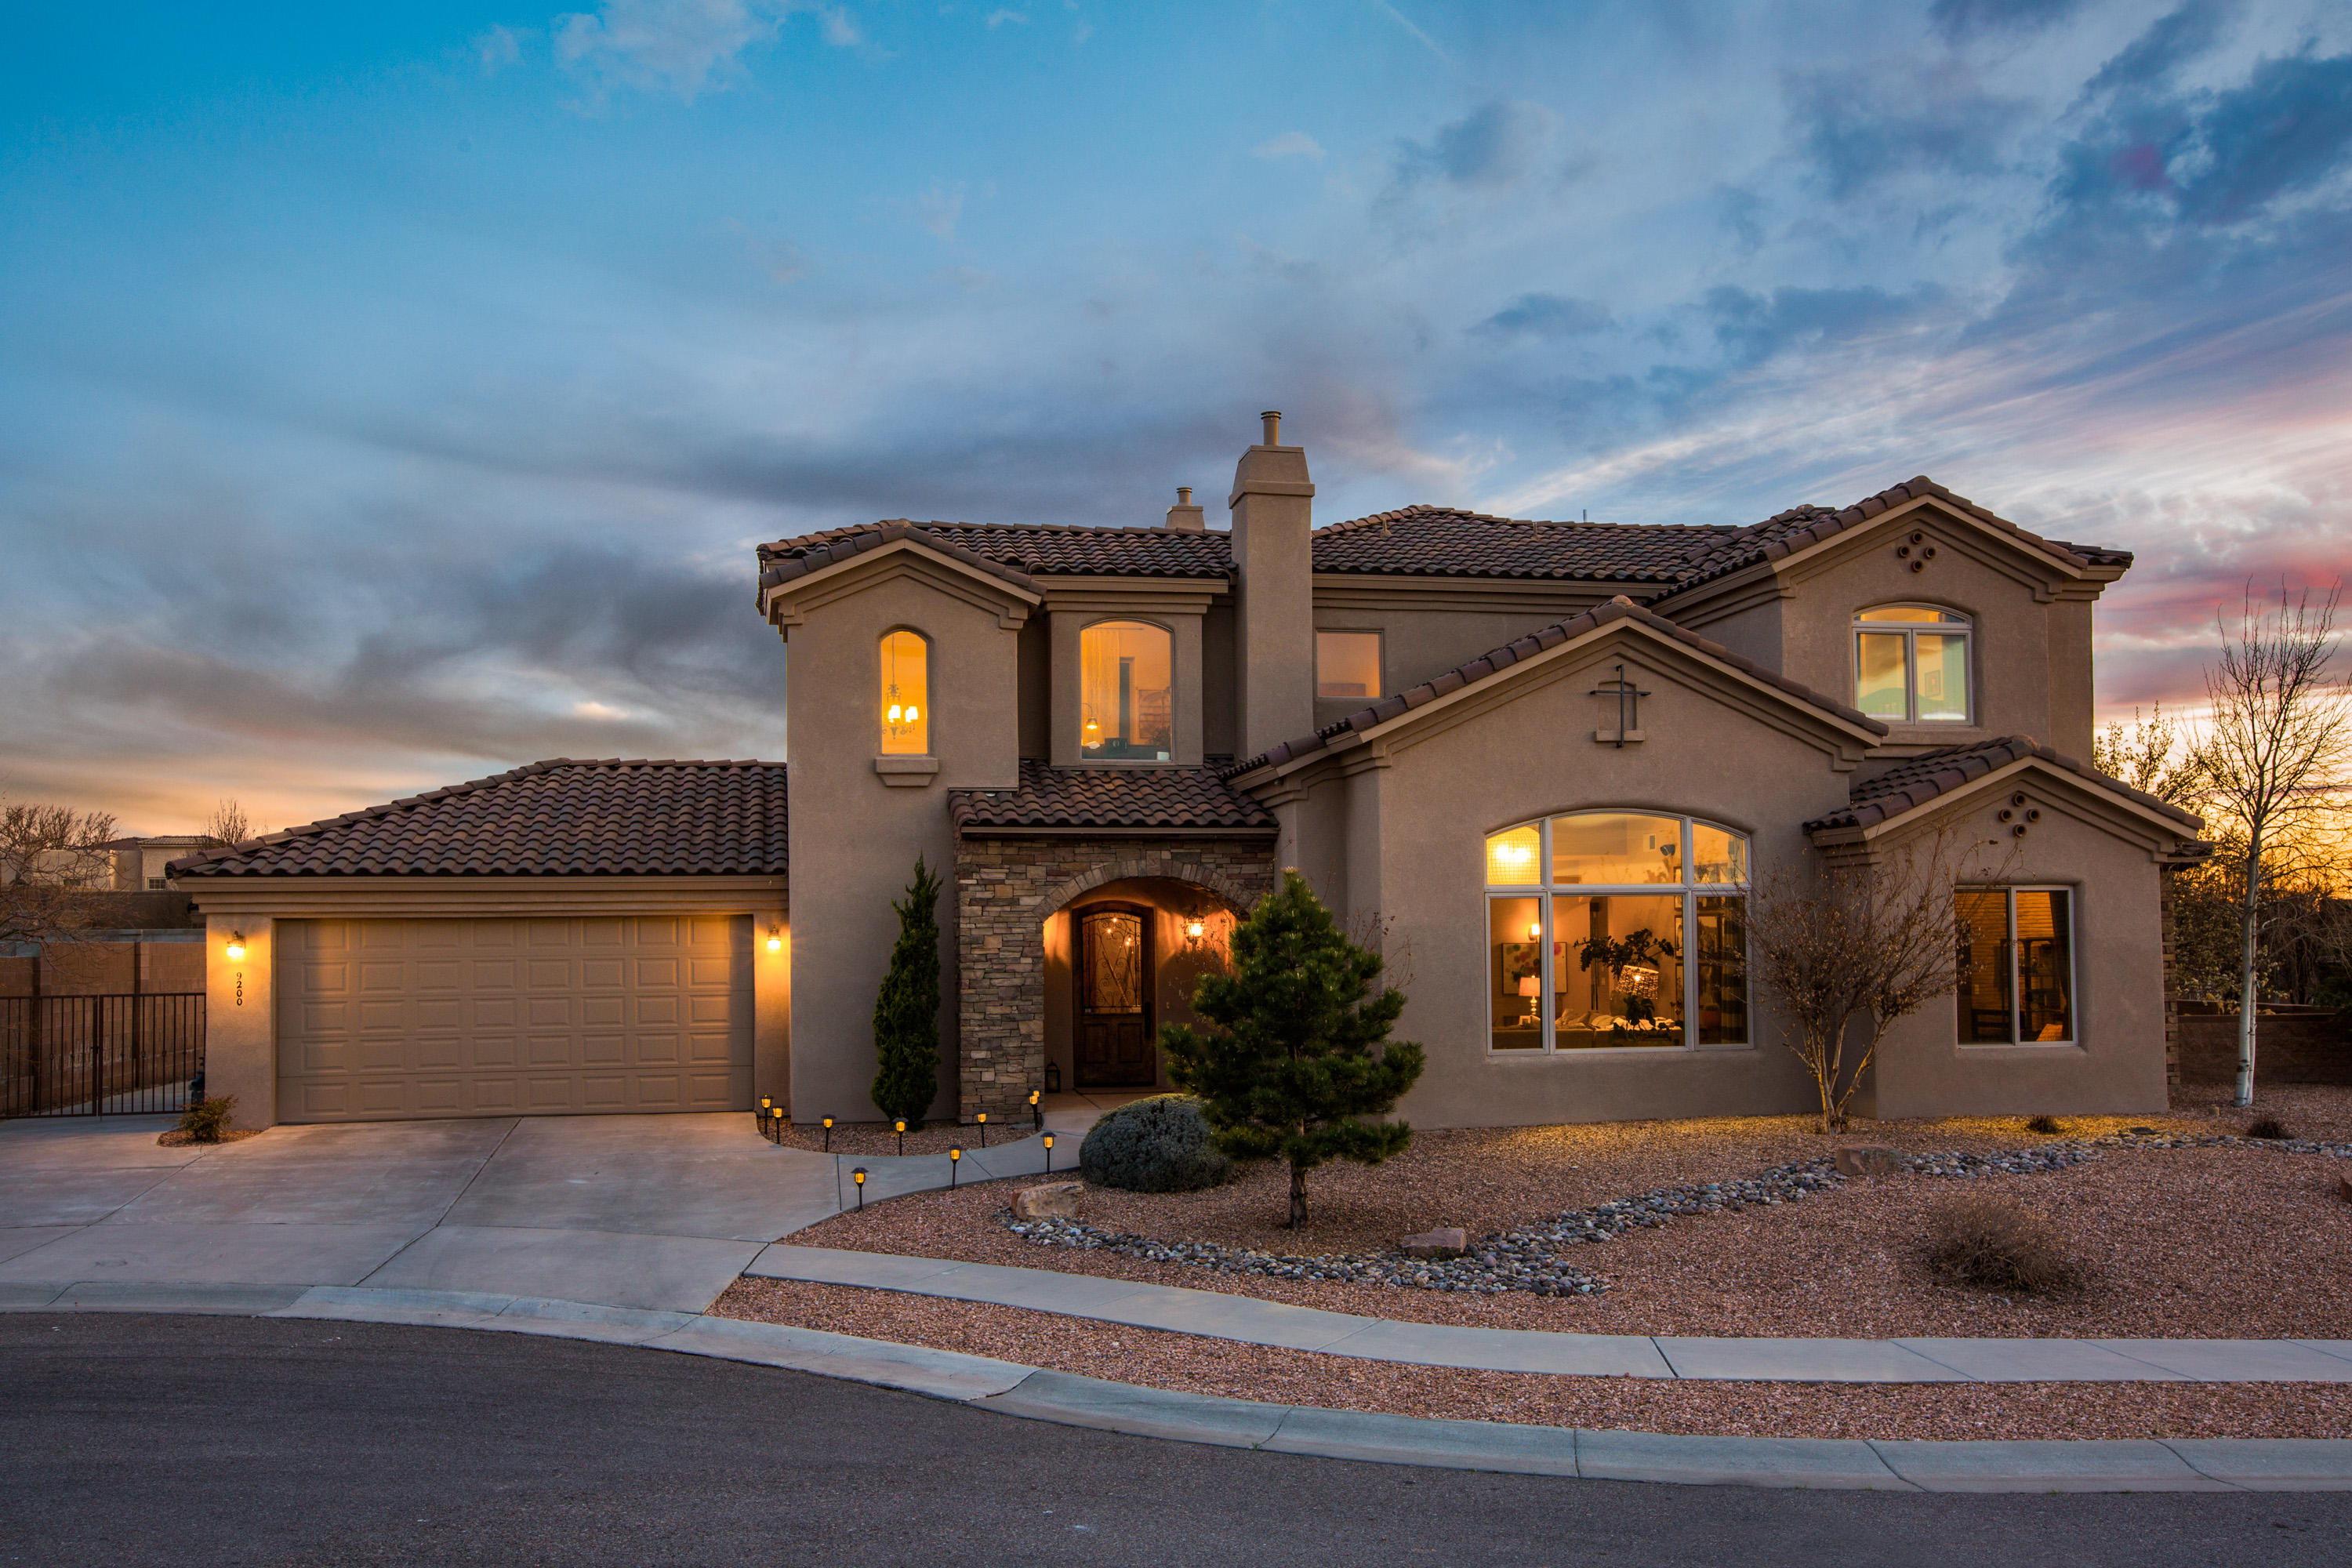 Just Listed!  Spectacular custom NM Gold rated Green home by Keystone. Situated perfectly on a corner lot with city and mountain views.  Outstanding attention to detail and craftsmanship are evident in this meticulously well cared for home.  Casual yet elegant style describes this fantastic floor plan. This beauty boast soaring ceilings that compliment the open and bright spaces.  Enjoy the gorgeous chefs  kitchen w/ stainless Thermador appliances,  polished granite island and beautiful alder wood cabinets. New Dutch wood floors throughout, travertine tile, surround sound w/ IOS apple interface. Simply awesome master retreat includes  2-way fire-place and walk-in closets. Recently installed new gate, paint and widow coverings! This stunner could not be replicated today at this price!